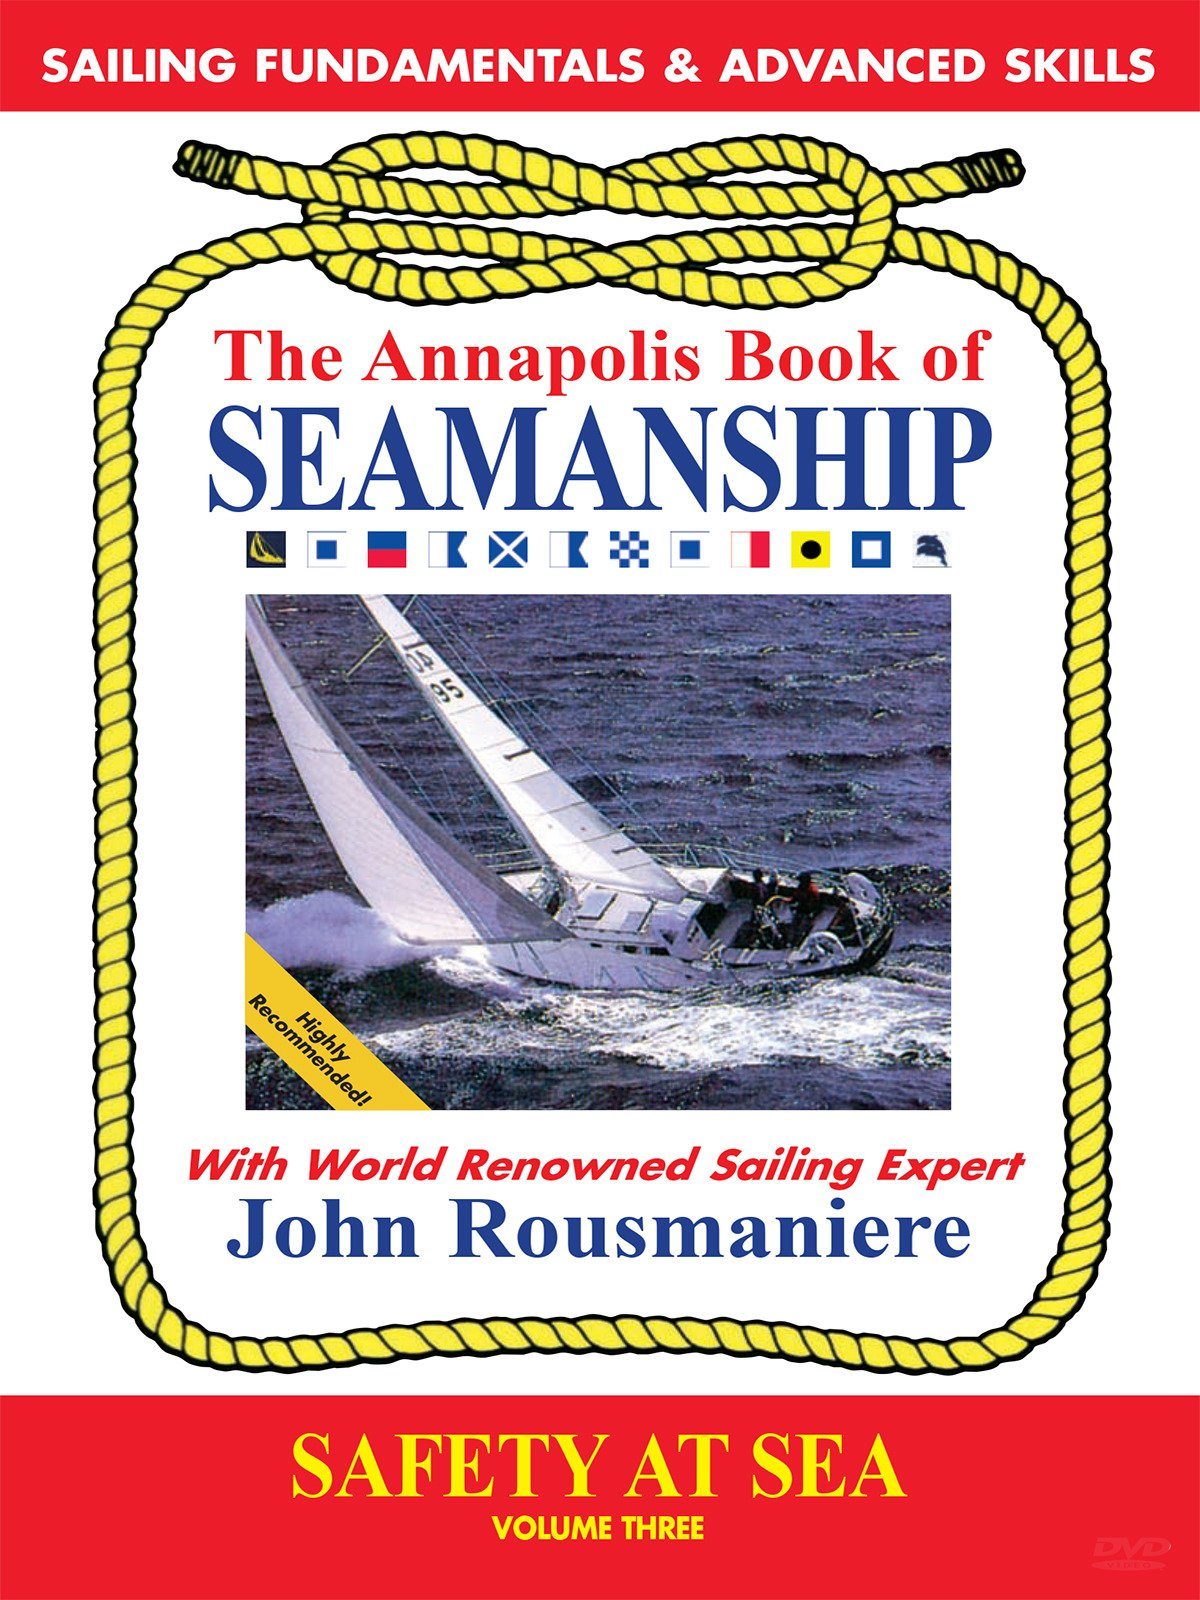 The Annapolis Book of Seamanship Sailing Fundamentals & Advanced Skills - Safety At Sea